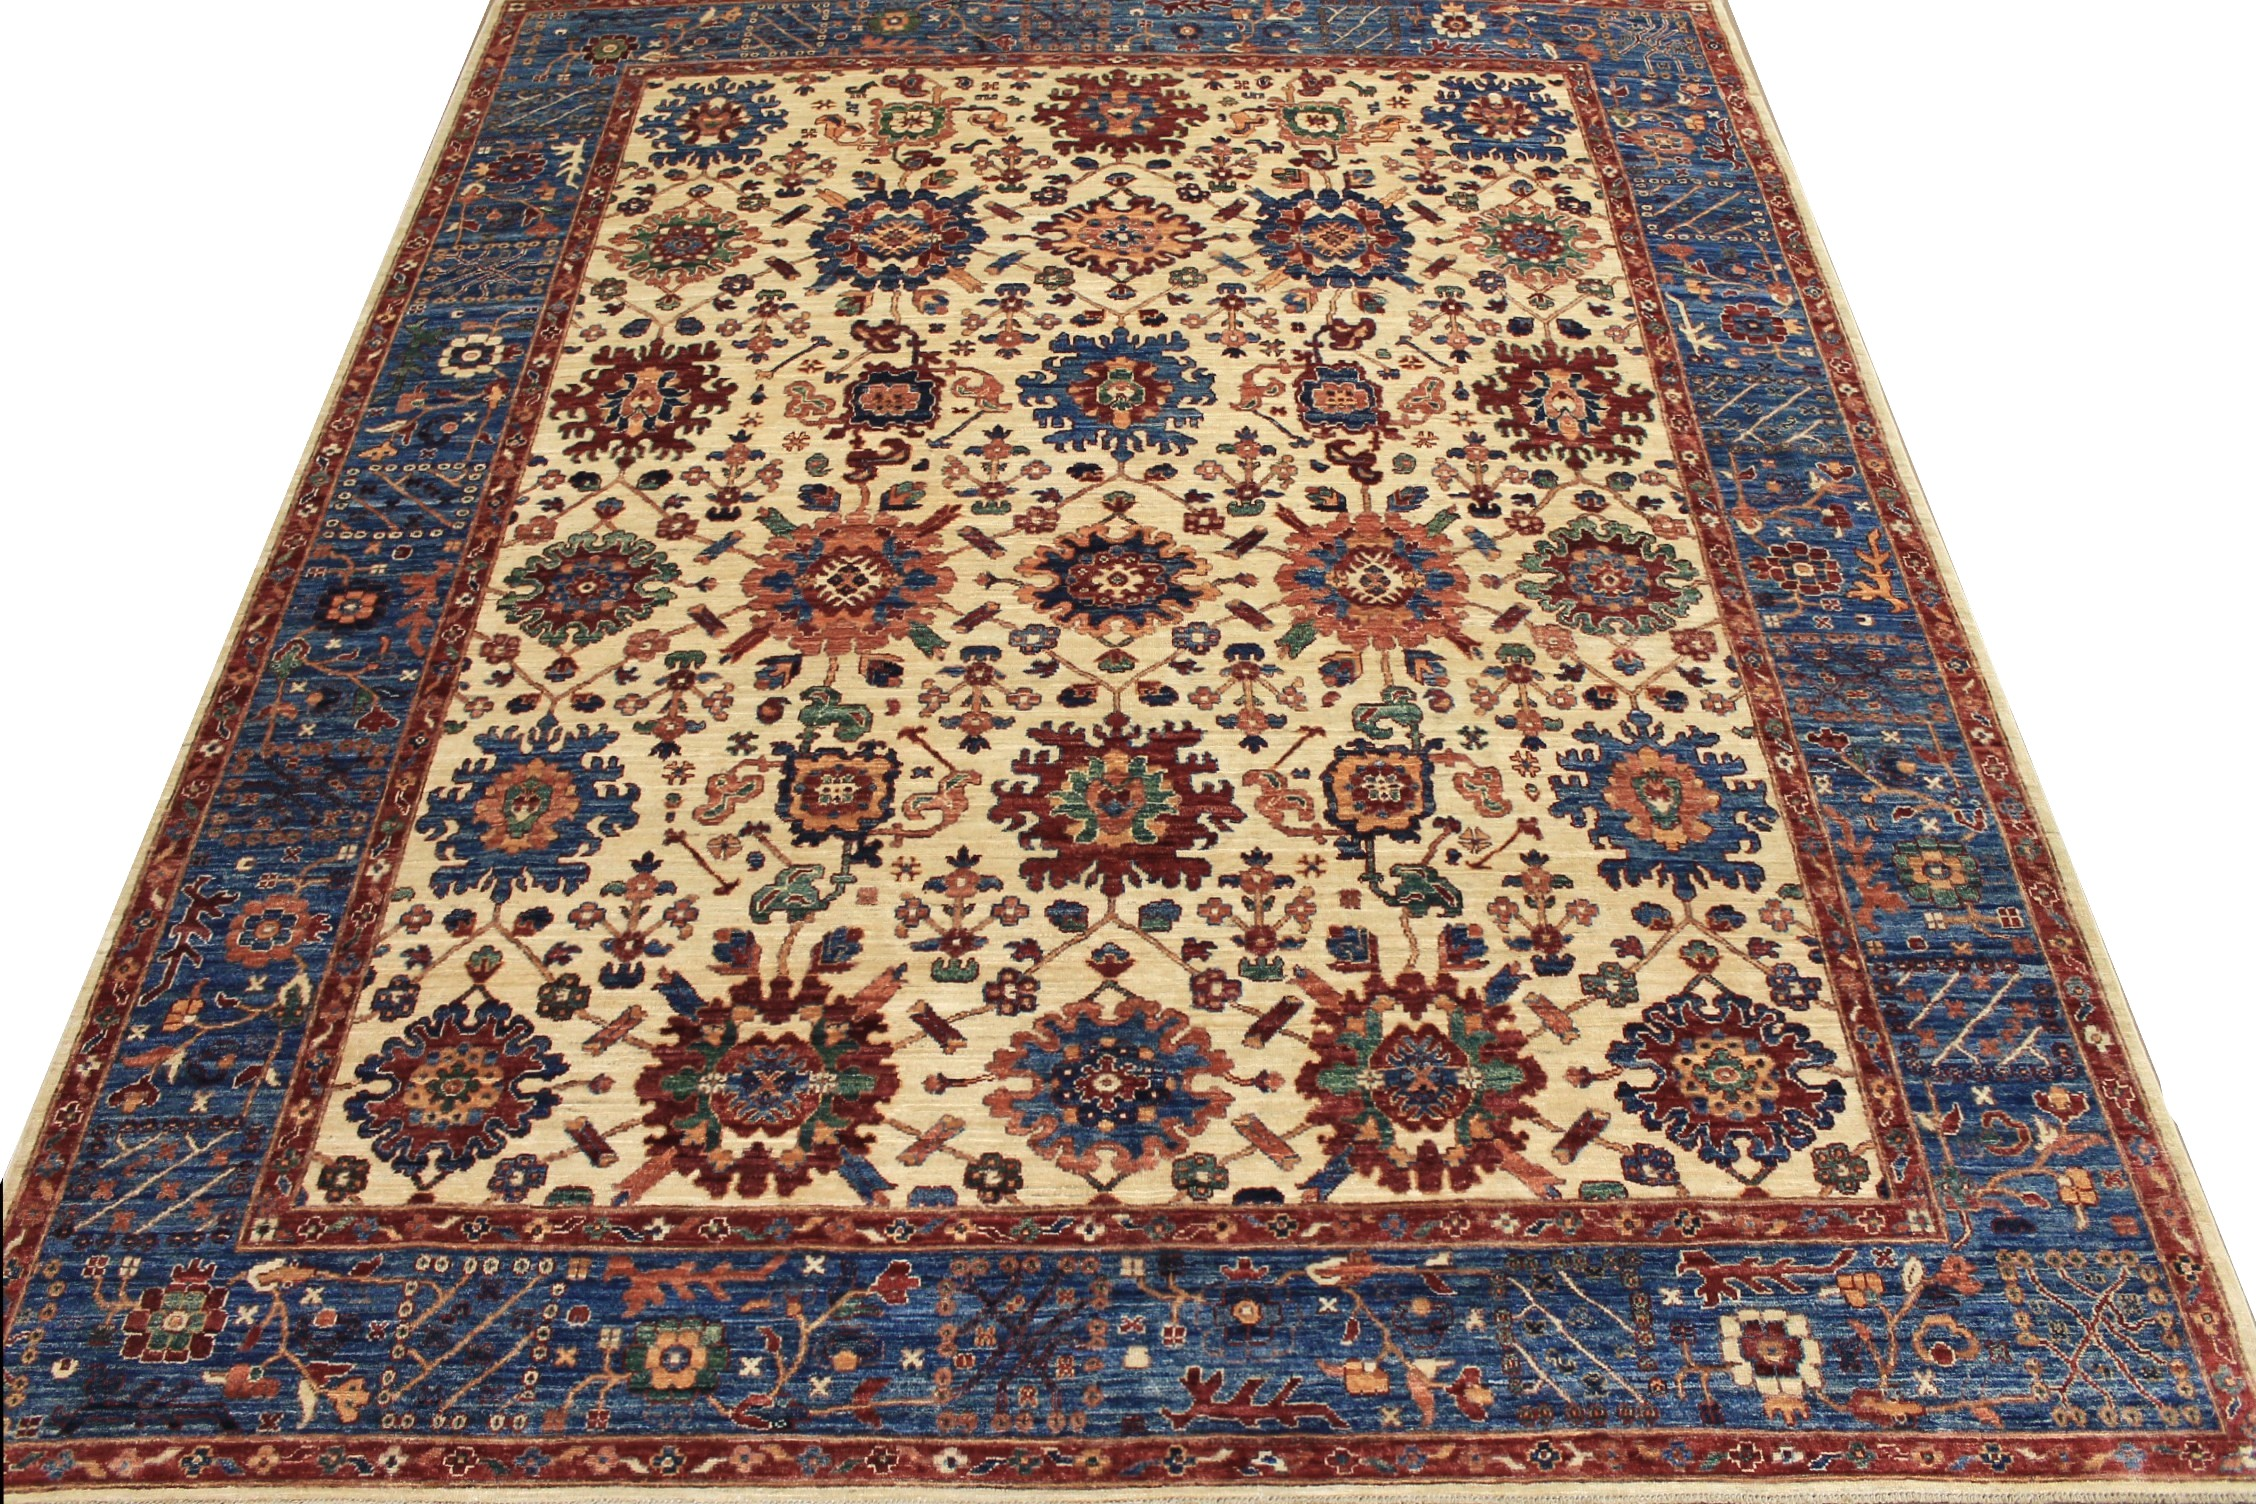 8x10 Aryana & Antique Revivals Hand Knotted Wool Area Rug - MR025280